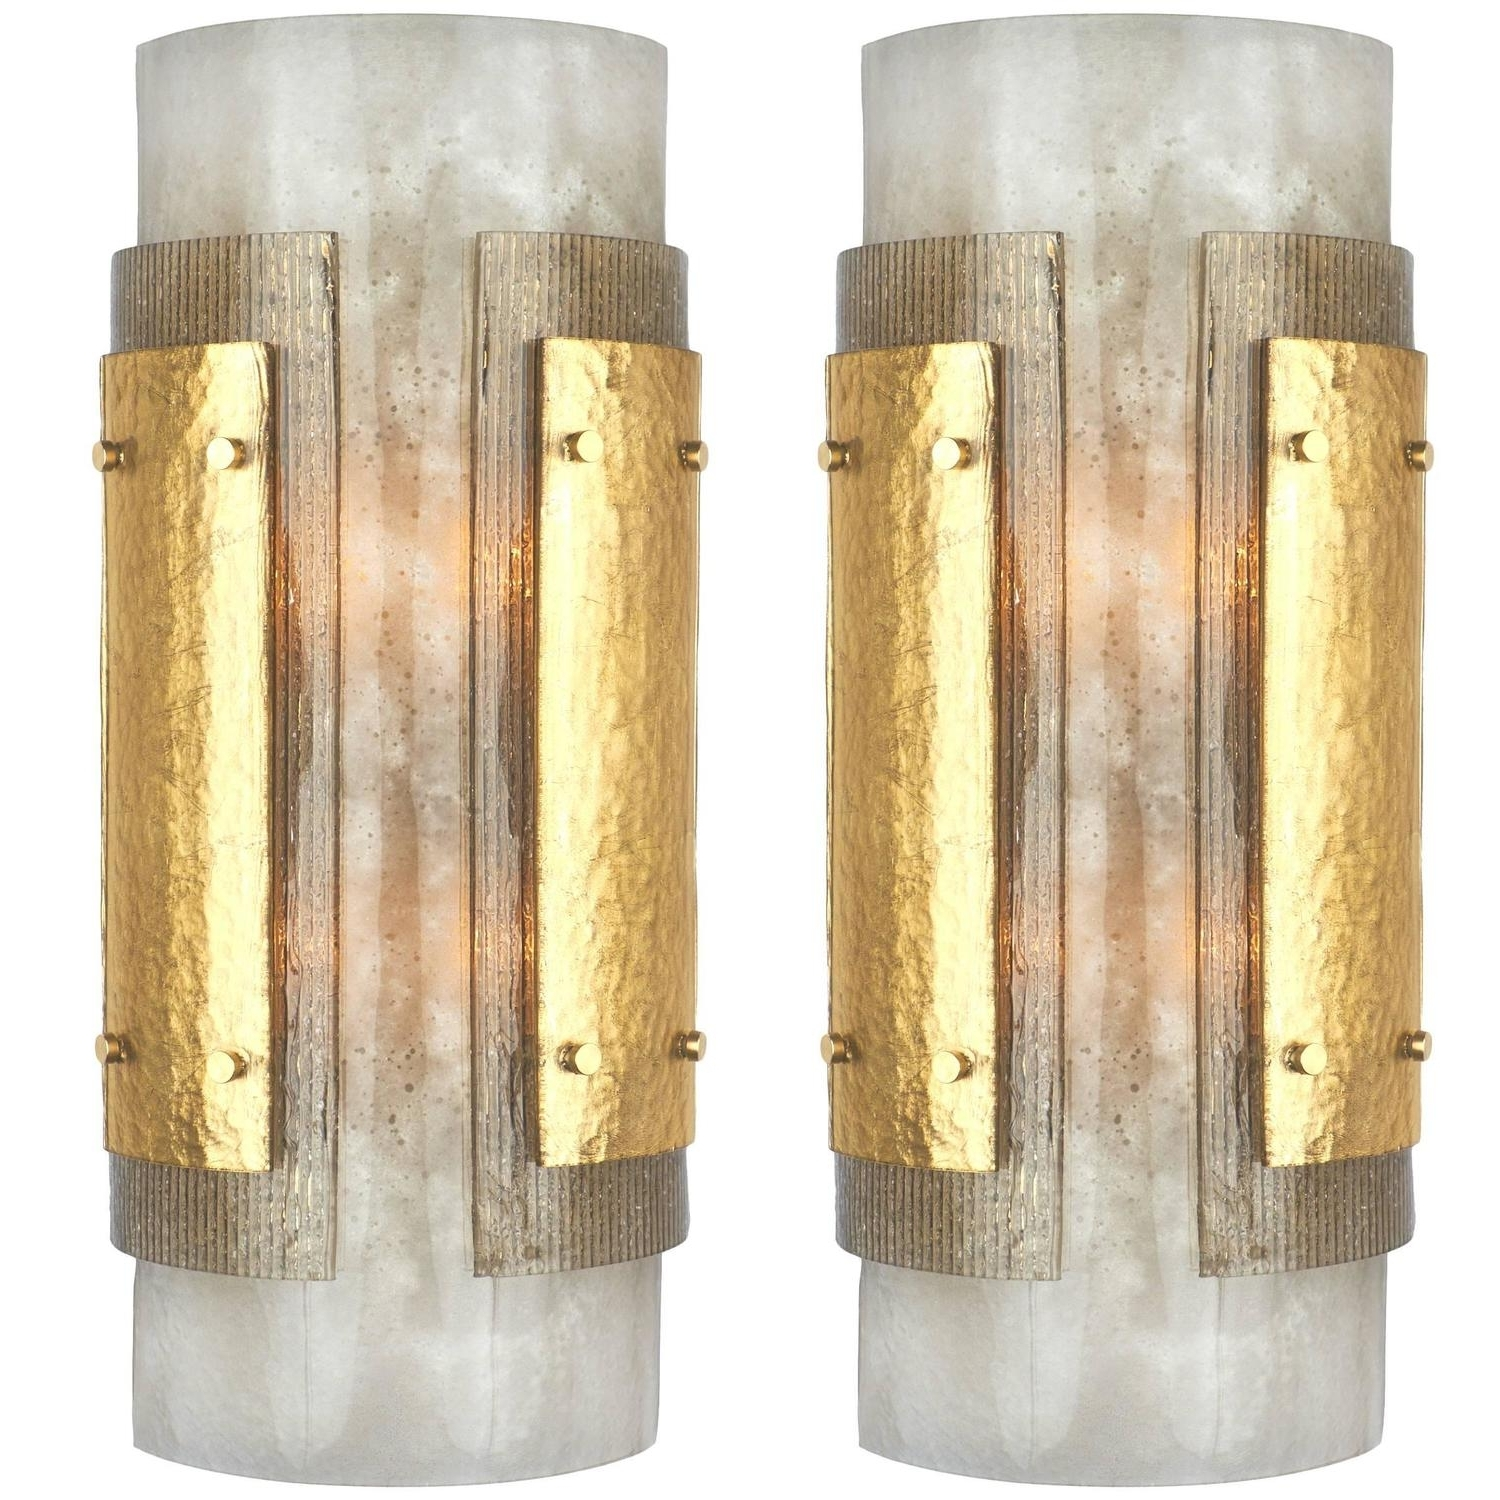 Art Deco Wall Sconces For Well Known Italian Art Deco Murano Glass Wall Sconces (View 8 of 20)